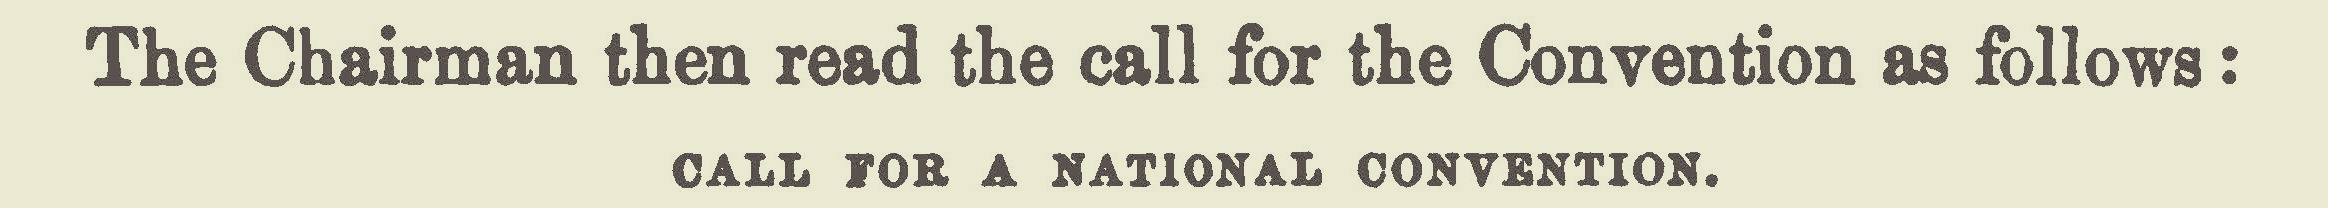 Strong, William, Call For a National Convention Title Page.jpg